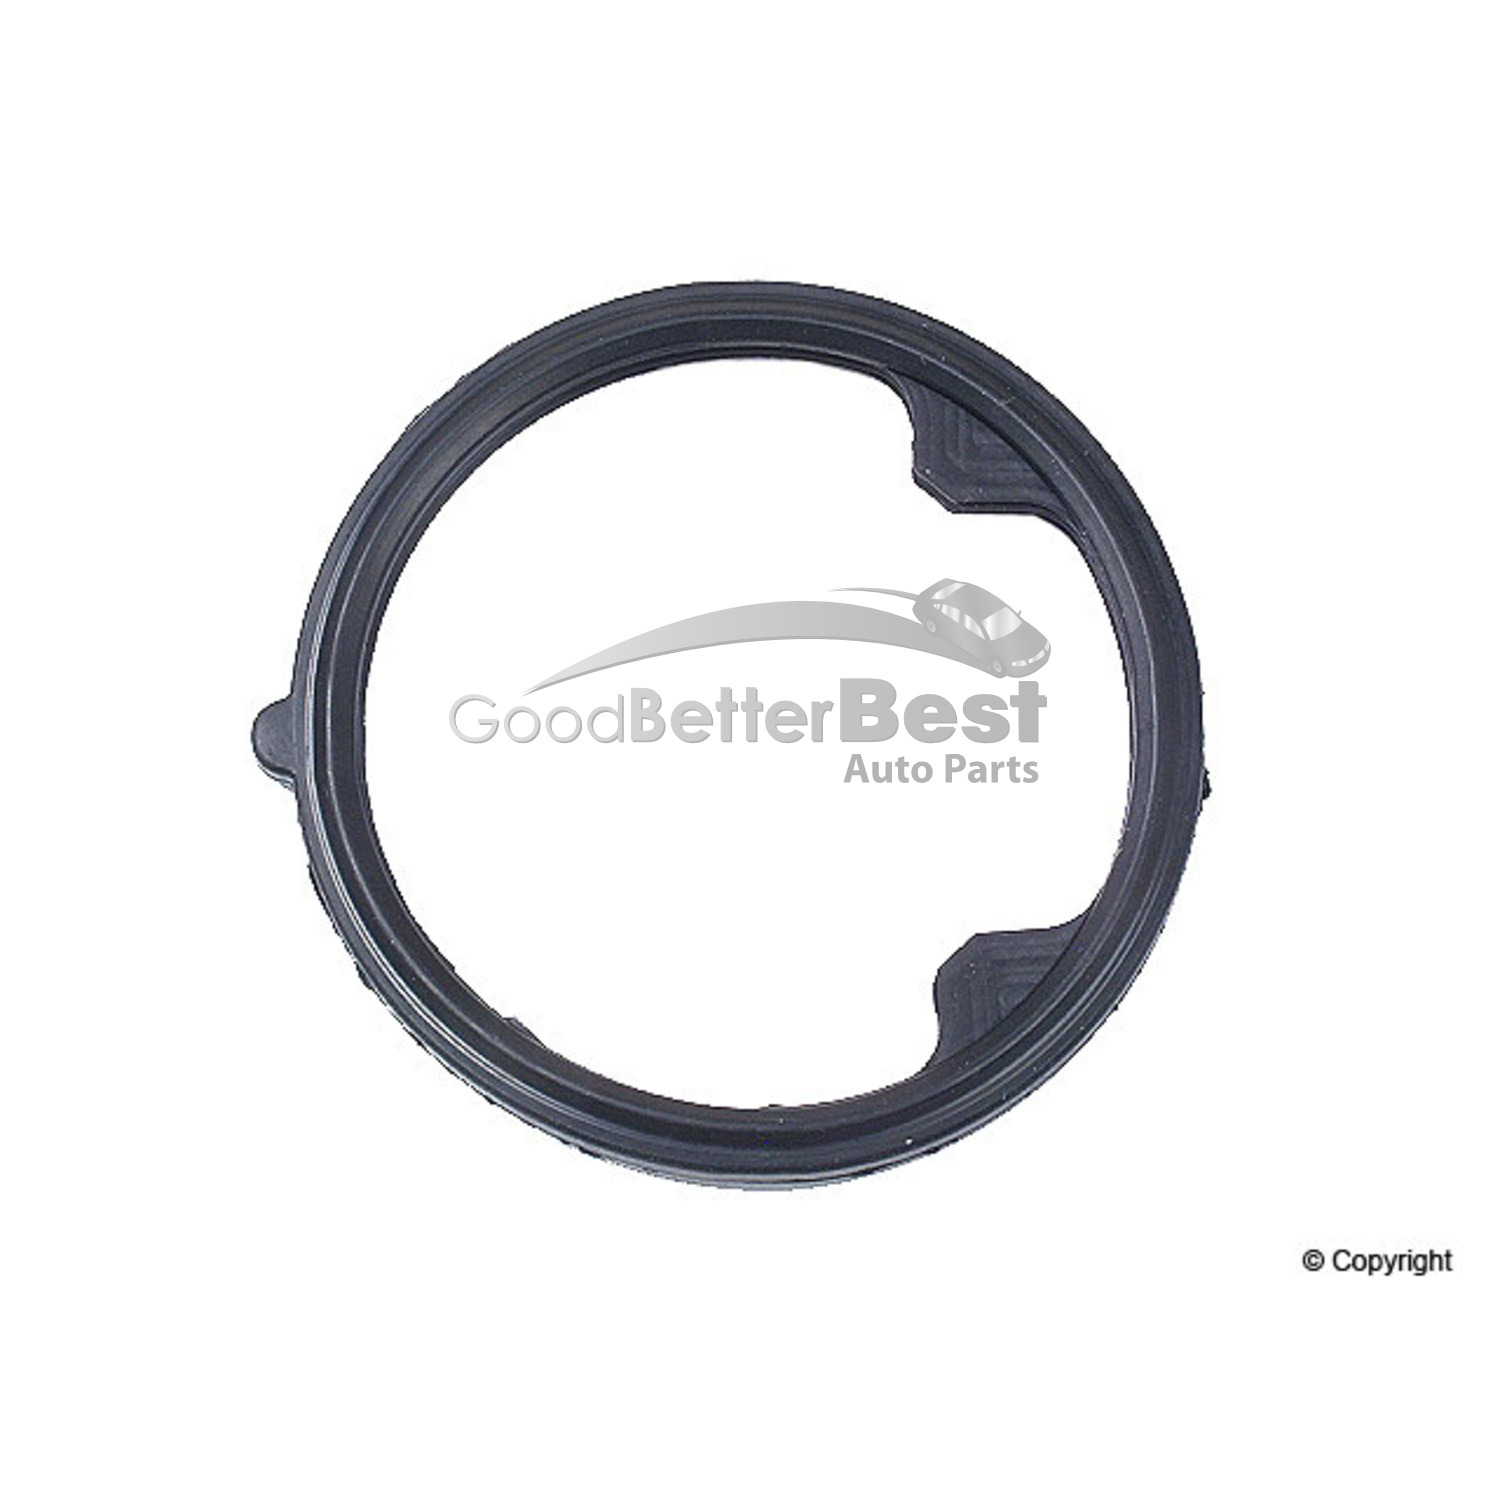 hight resolution of details about new stone engine coolant thermostat seal jg483751 19305pr7a00 acura honda saturn